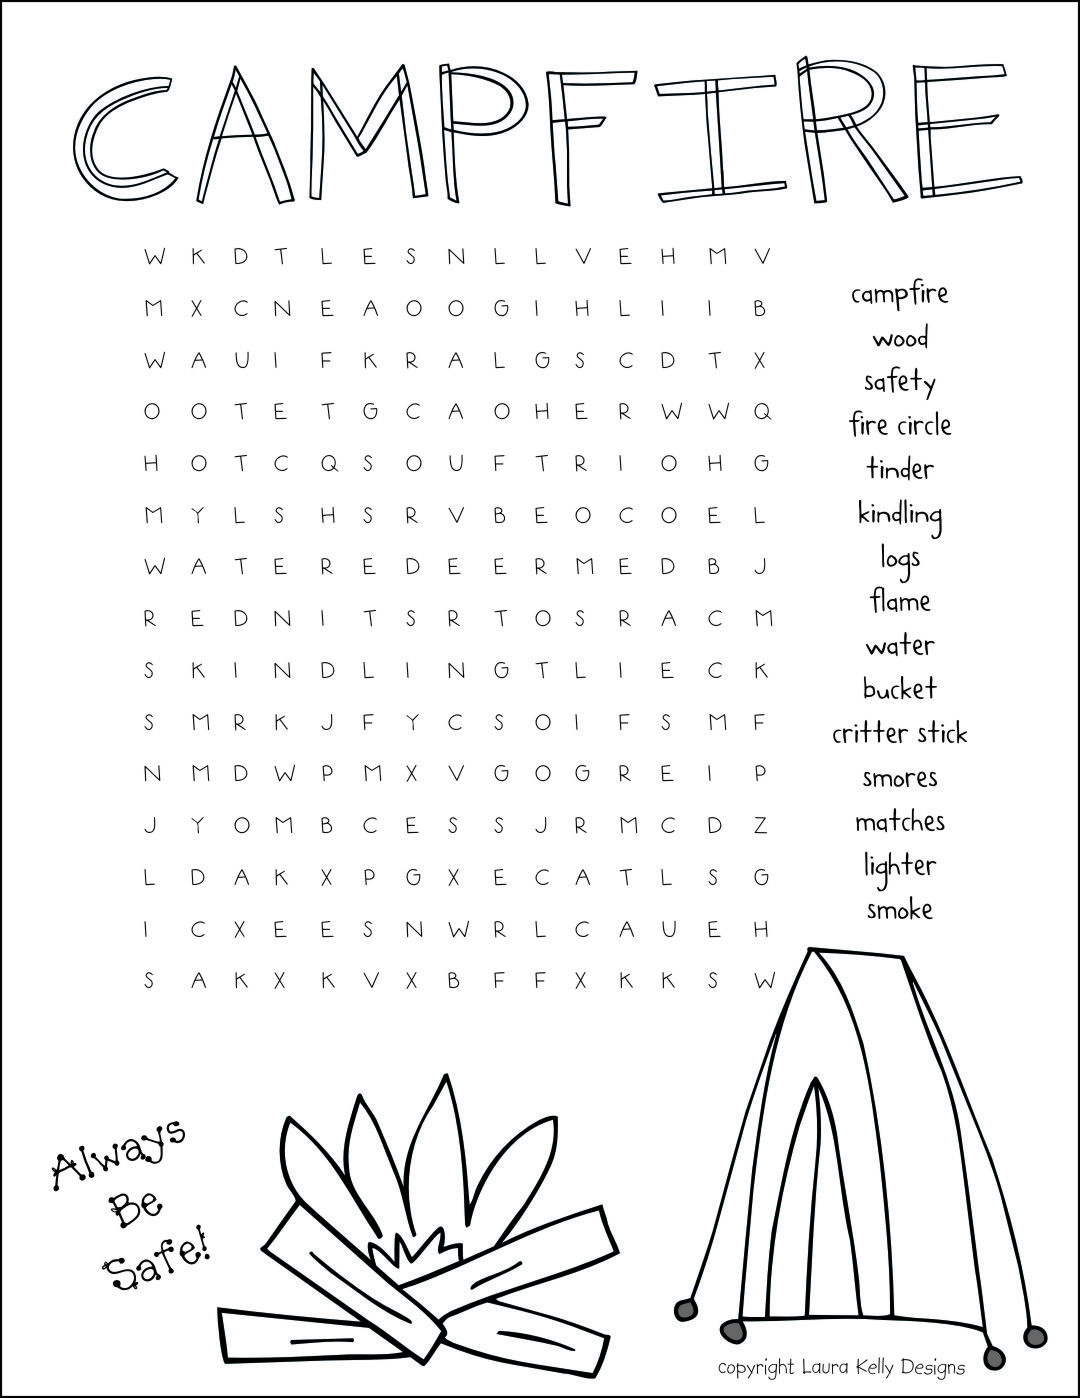 How To Build A Campfire Girl Scout Print Out